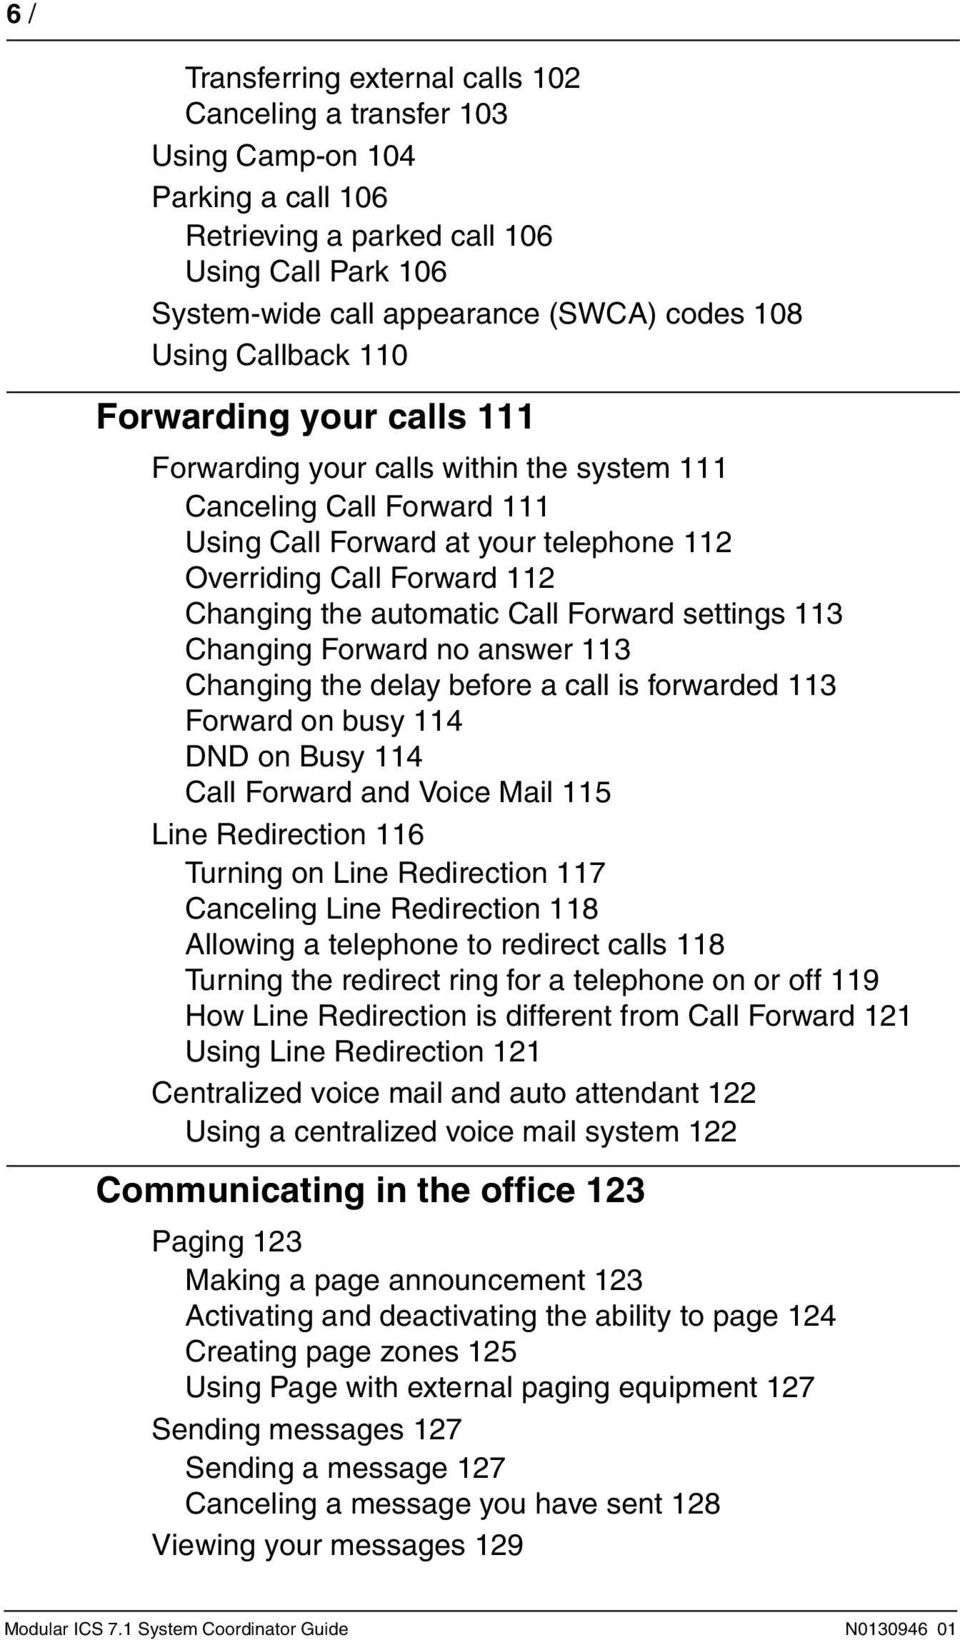 automatic Call Forward settings 113 Changing Forward no answer 113 Changing the delay before a call is forwarded 113 Forward on busy 114 DND on Busy 114 Call Forward and Voice Mail 115 Line